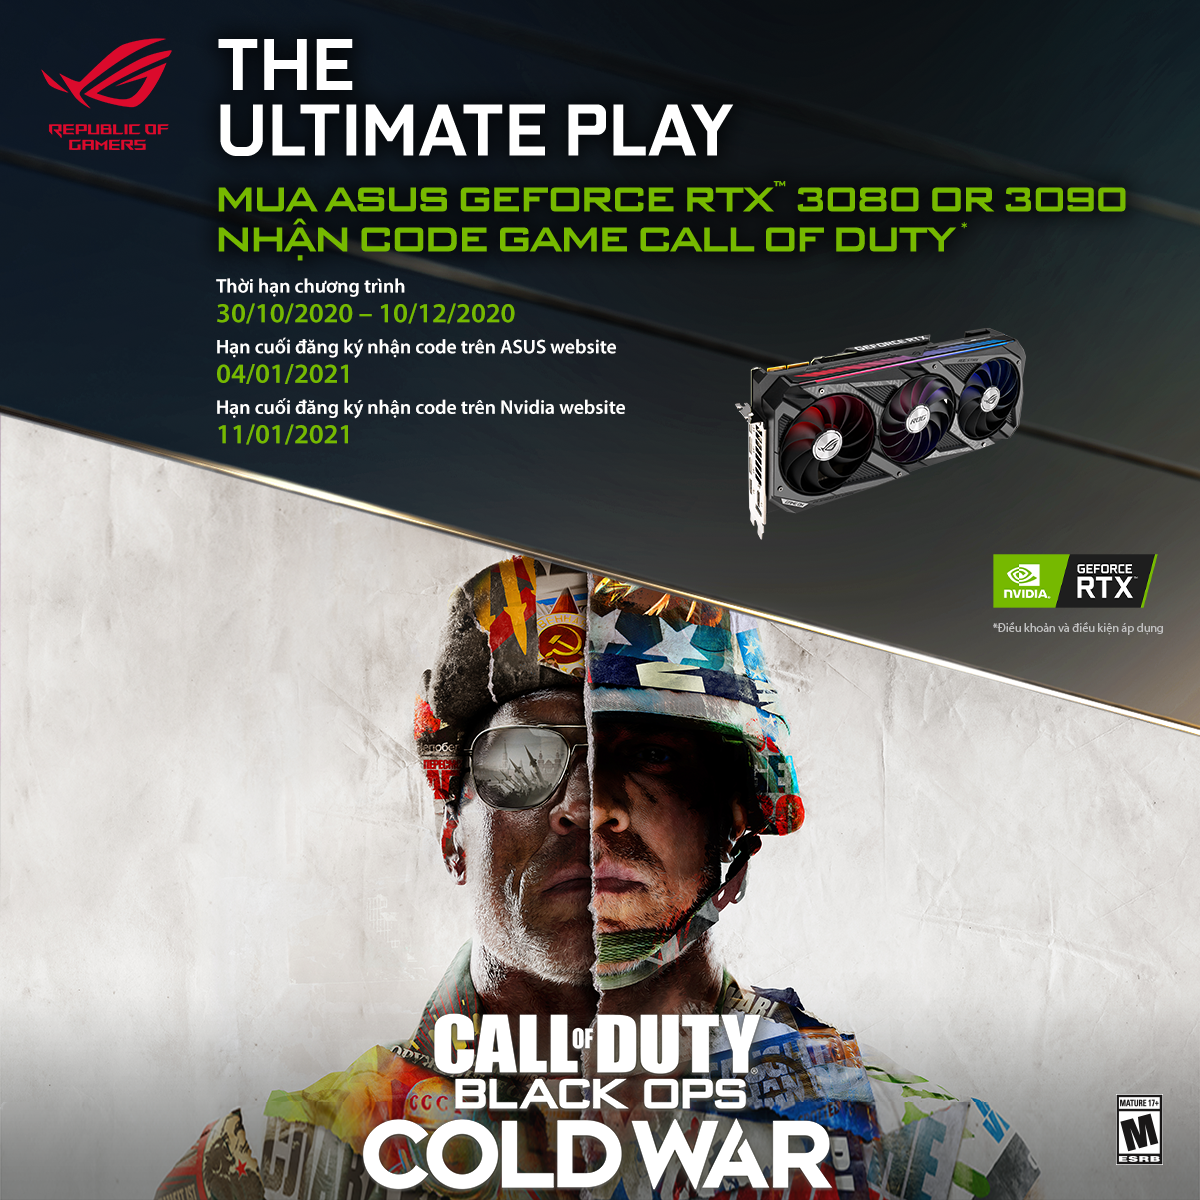 CTKM Mua Card Đồ Họa ASUS RTX3090/ 3080 Series Nhận Ngay Code Game Call Of Duty: Black Ops Cold War